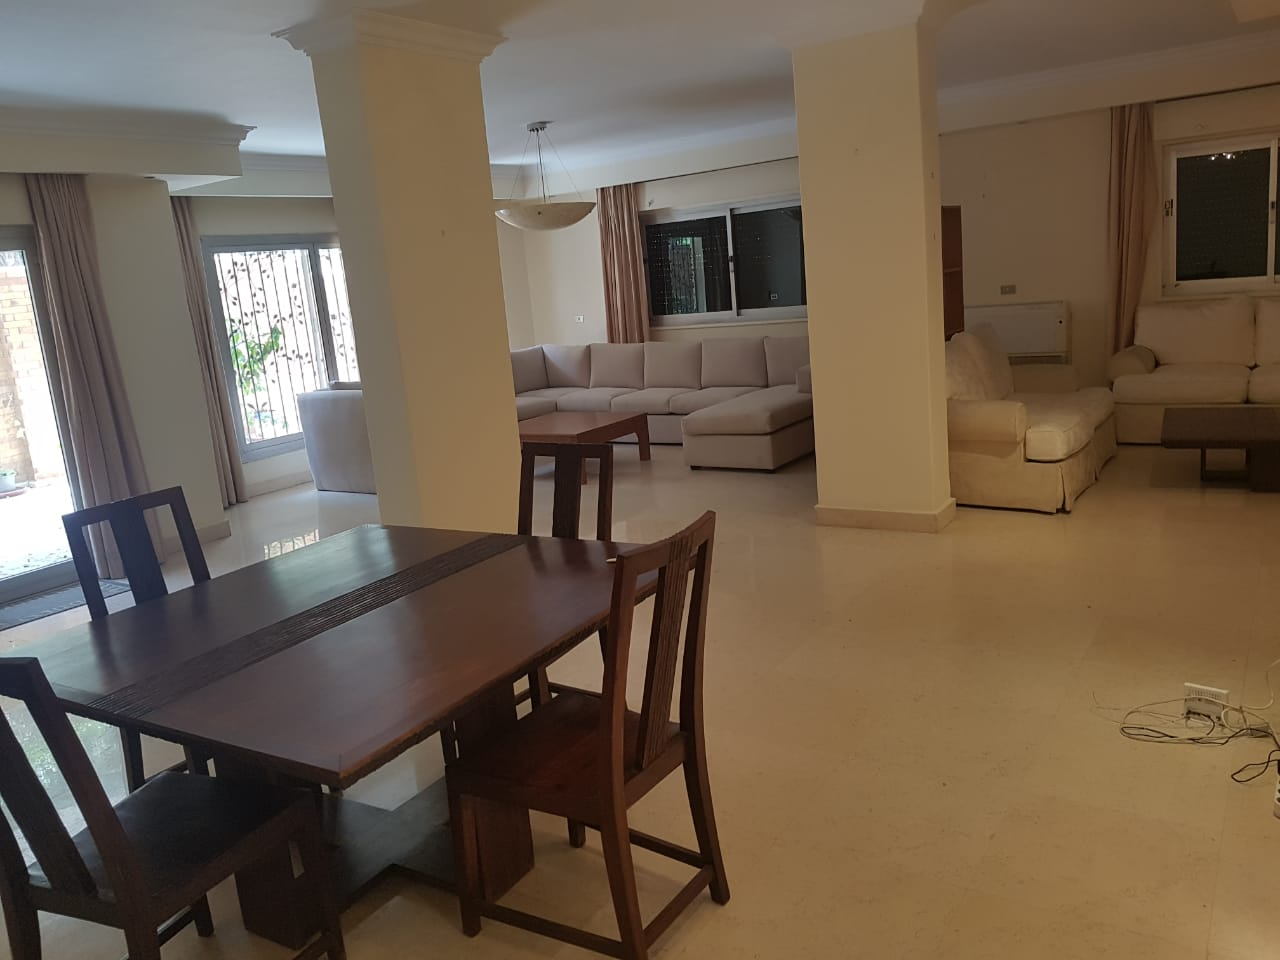 Ground Floors For Rent In Maadi Maadi Sarayat -#18